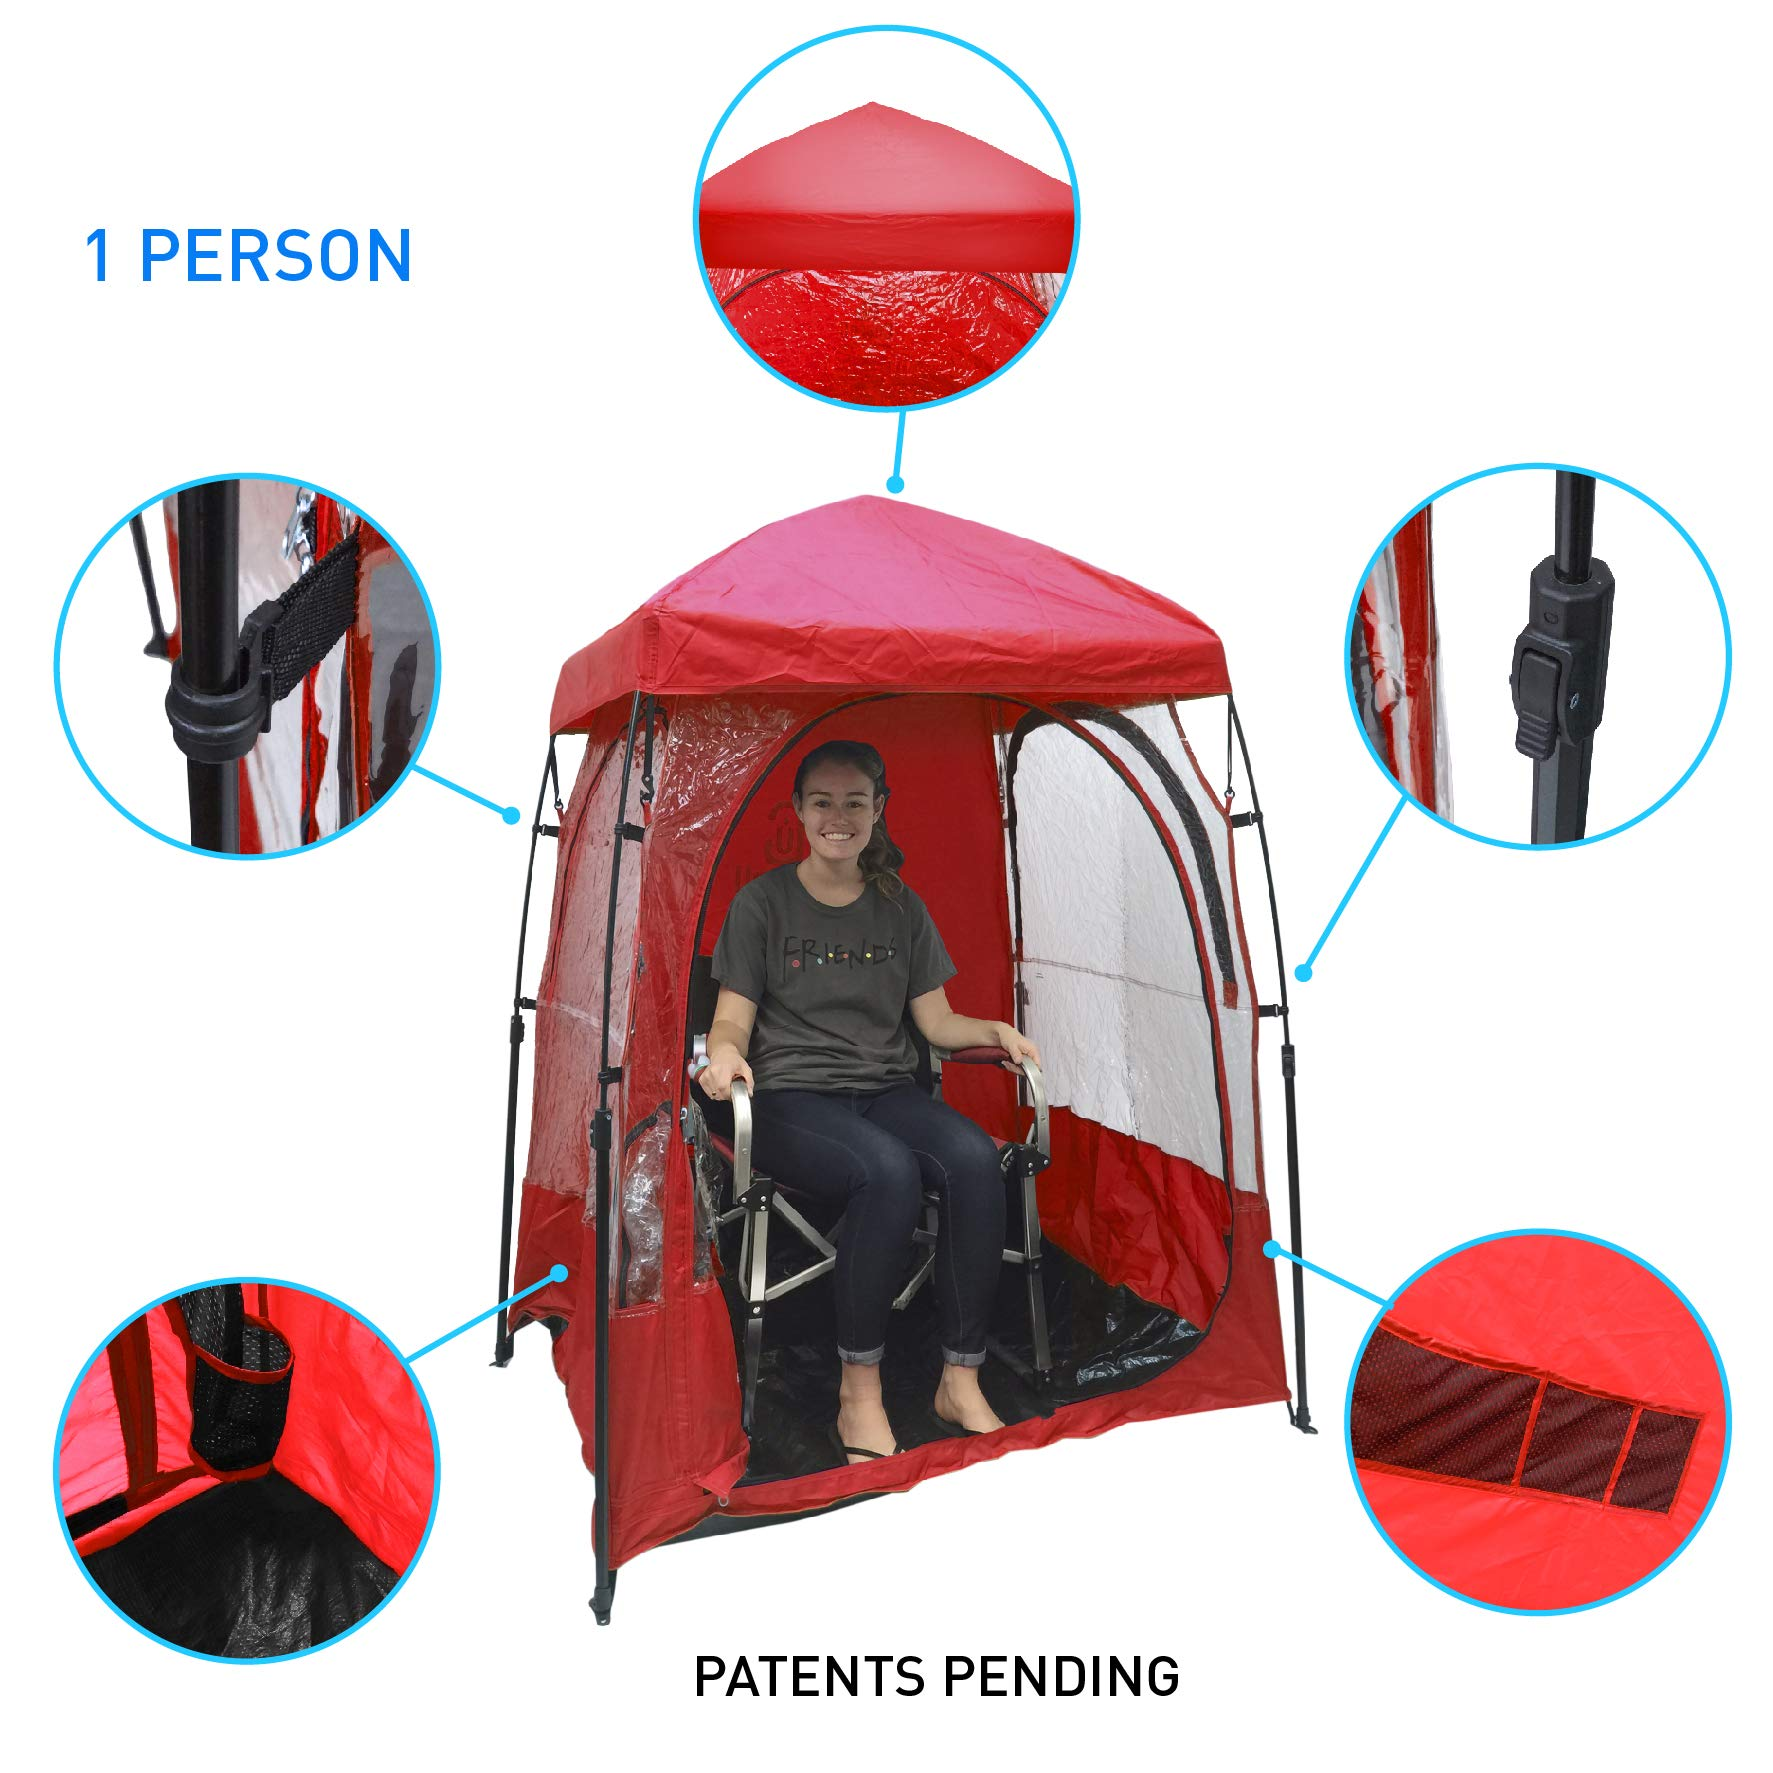 EasyGoProducts CoverU Sports Shelter – 1 Person Weather Tent Pod (RED) – Patents Pending